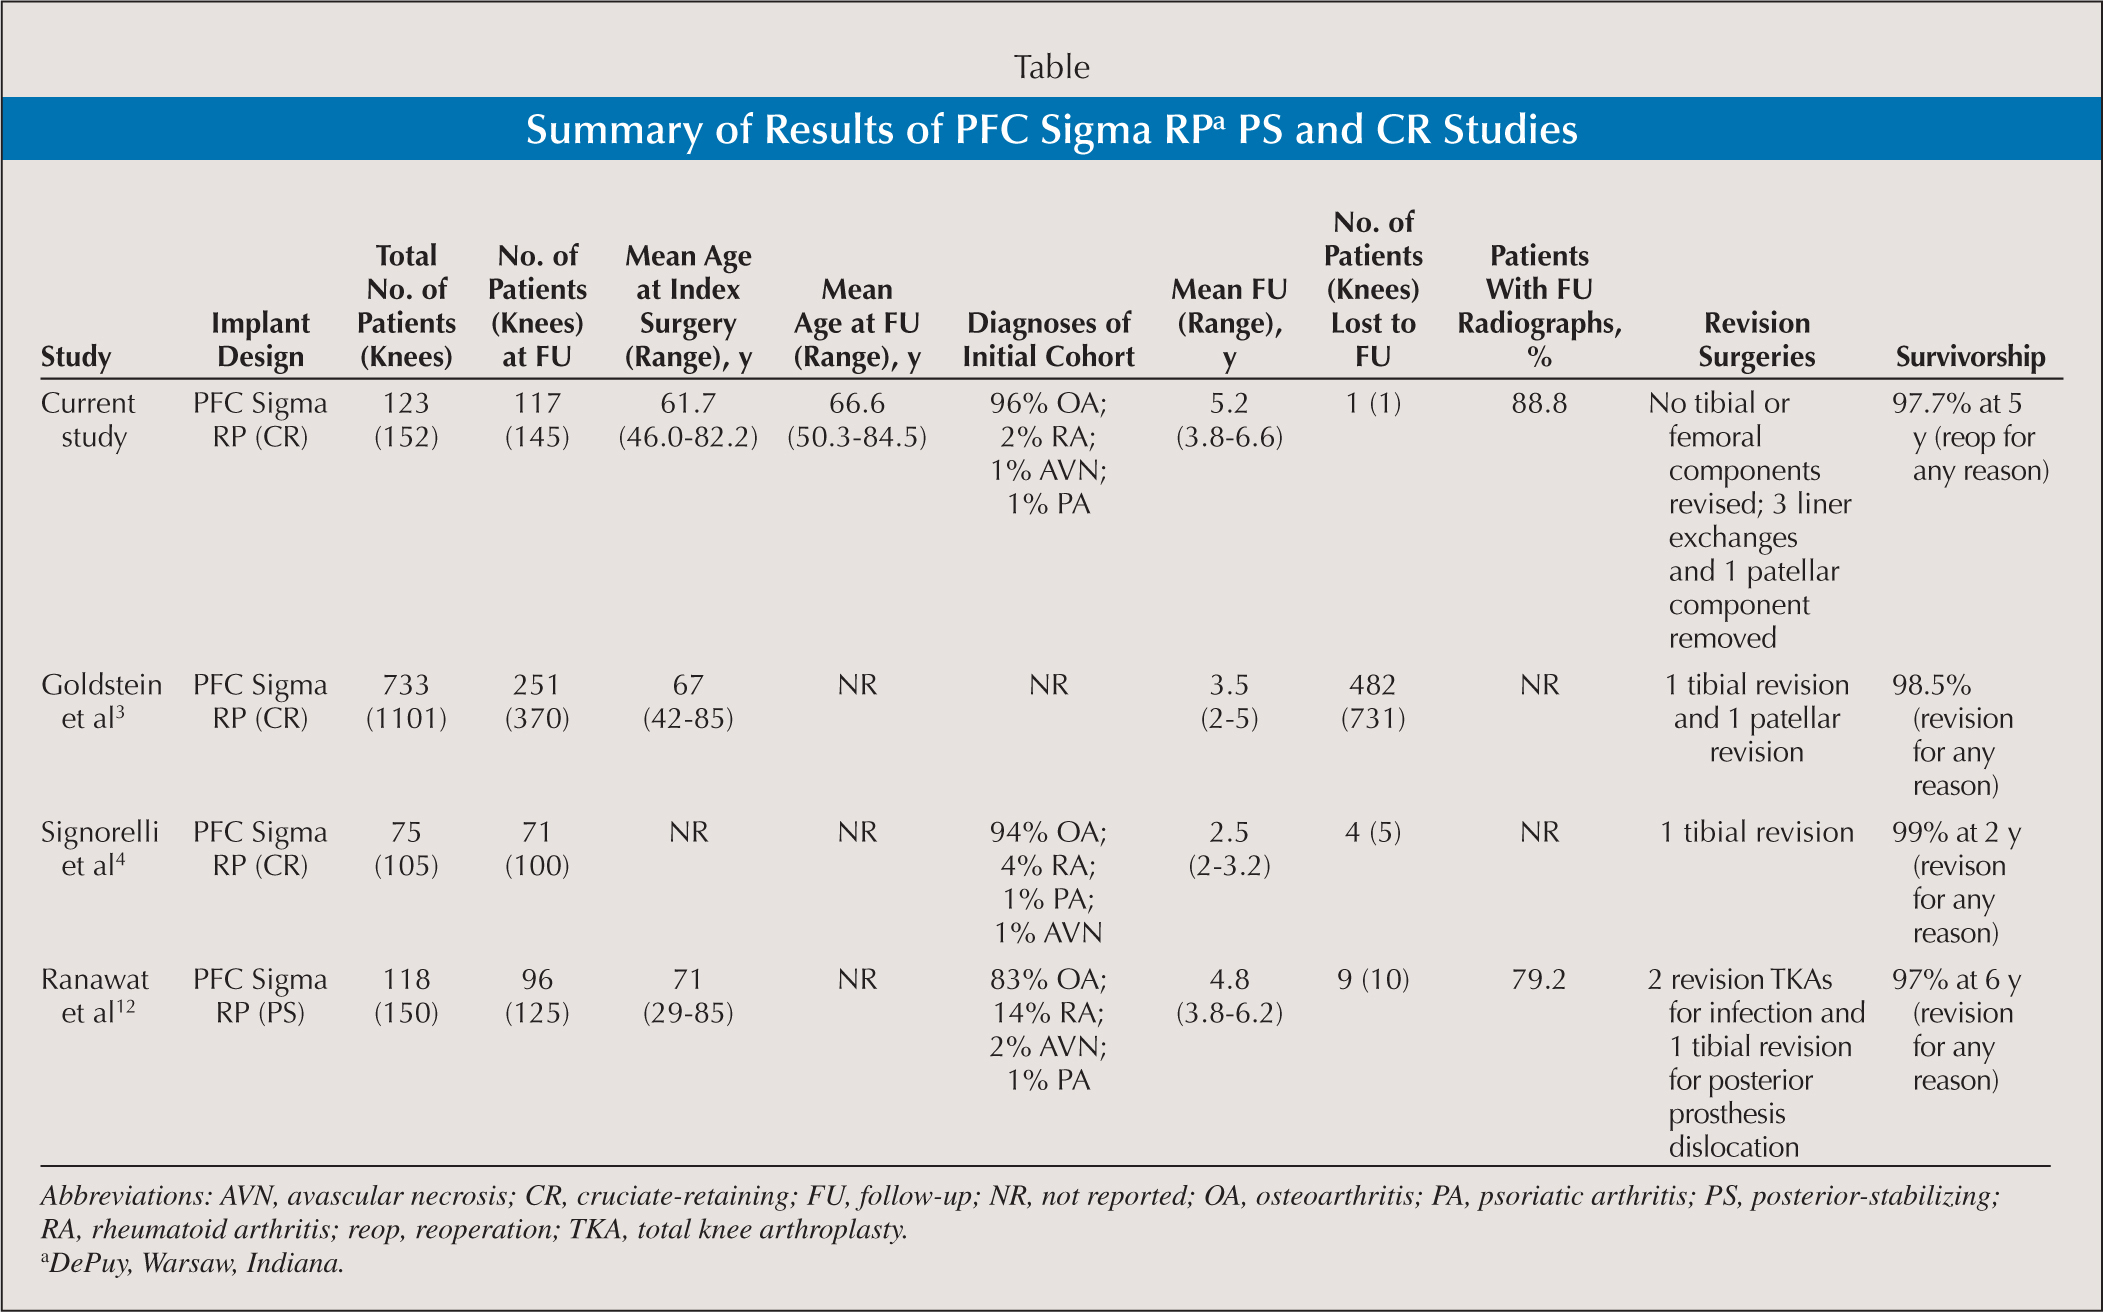 Summary of Results of PFC Sigma RPa PS and CR Studies